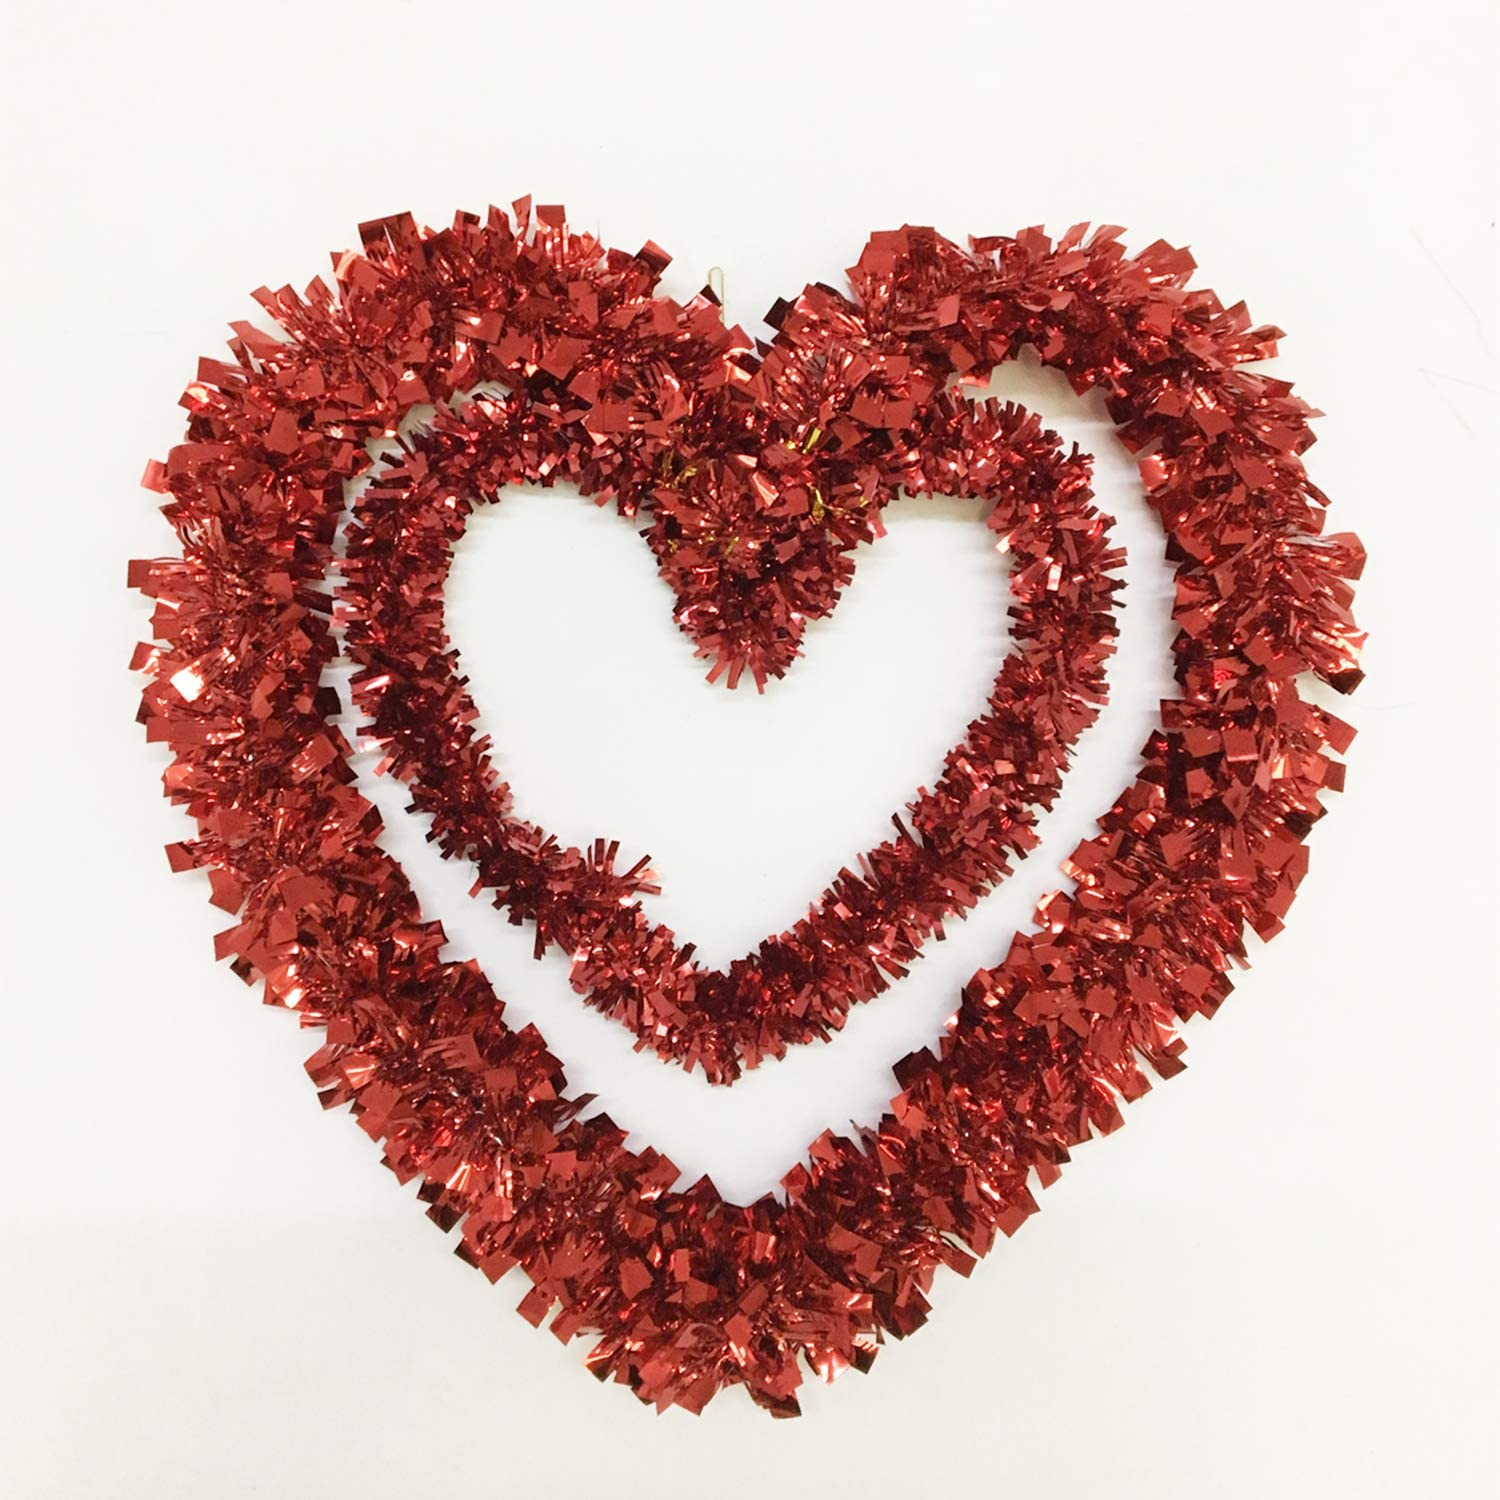 Red Tinsel Heart Wreath Decorations - Double Heart Shaped Decor for Front Door Wall - Valentine Day Wreath Decorations Outdoor Indoor - Artificial Heart Decorations for Party, 12 Inch